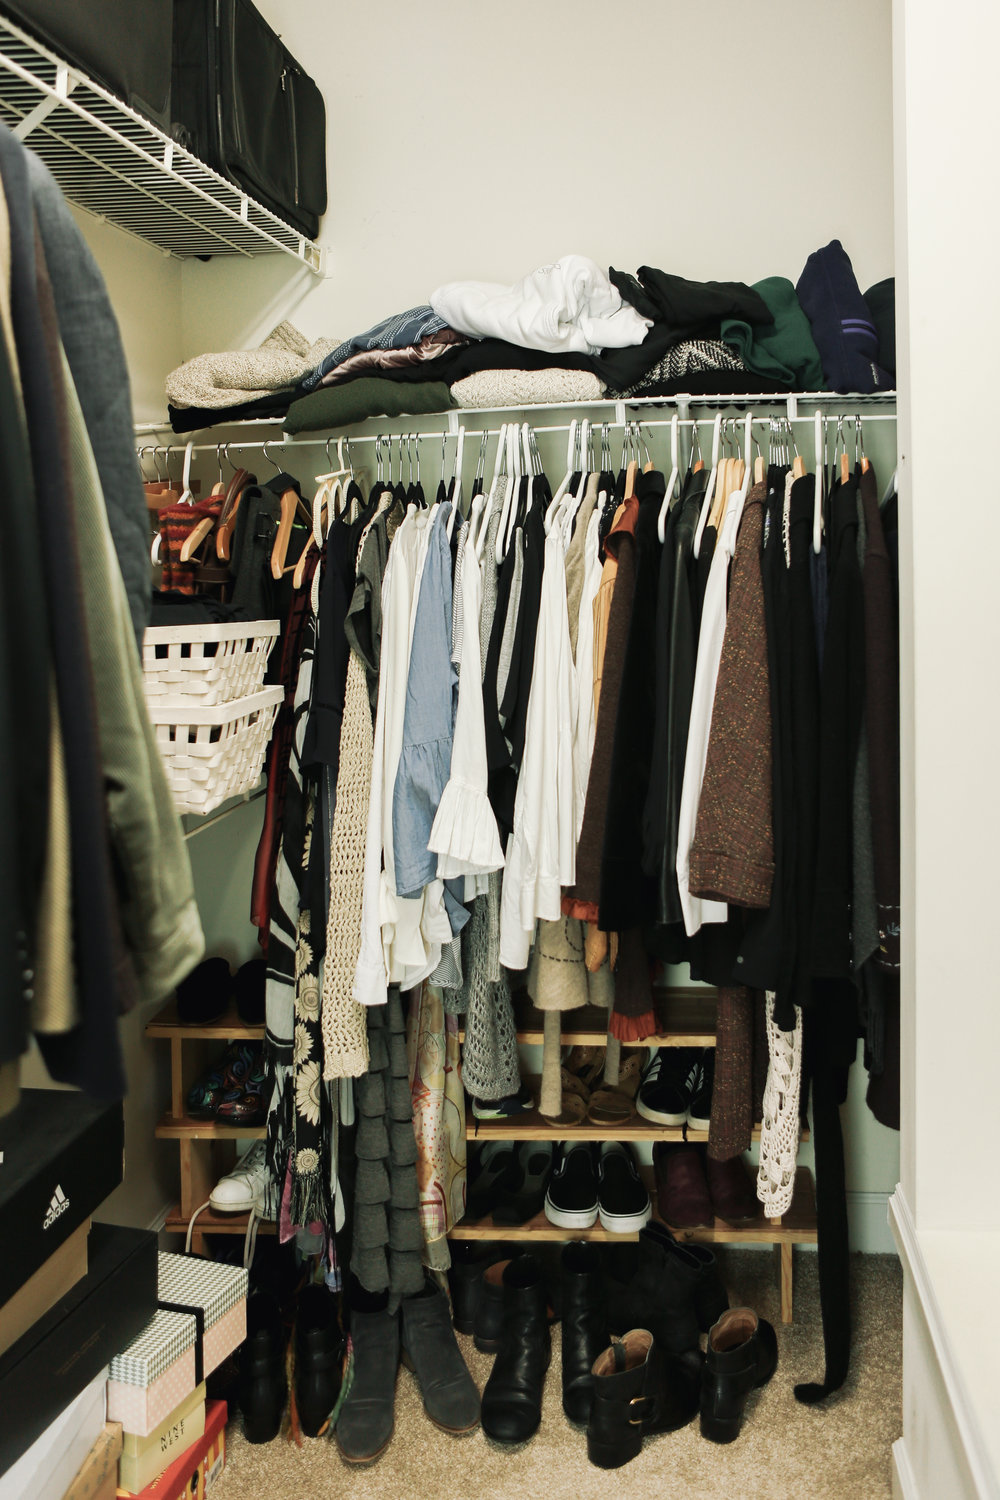 Step 1 - Does your closet look like this?! It's hard to find and put together your favorite summer outfits when all your winter items are mixed in and there is no organizing system in place.First Step - Take ALL fall and winter garments out of your closet. That means sweaters, jackets, accessories (hats, gloves, scarves), winter boots and anything wool and a heavier weight. Most importantly, remove anything that you know you will not wear for the next three months.